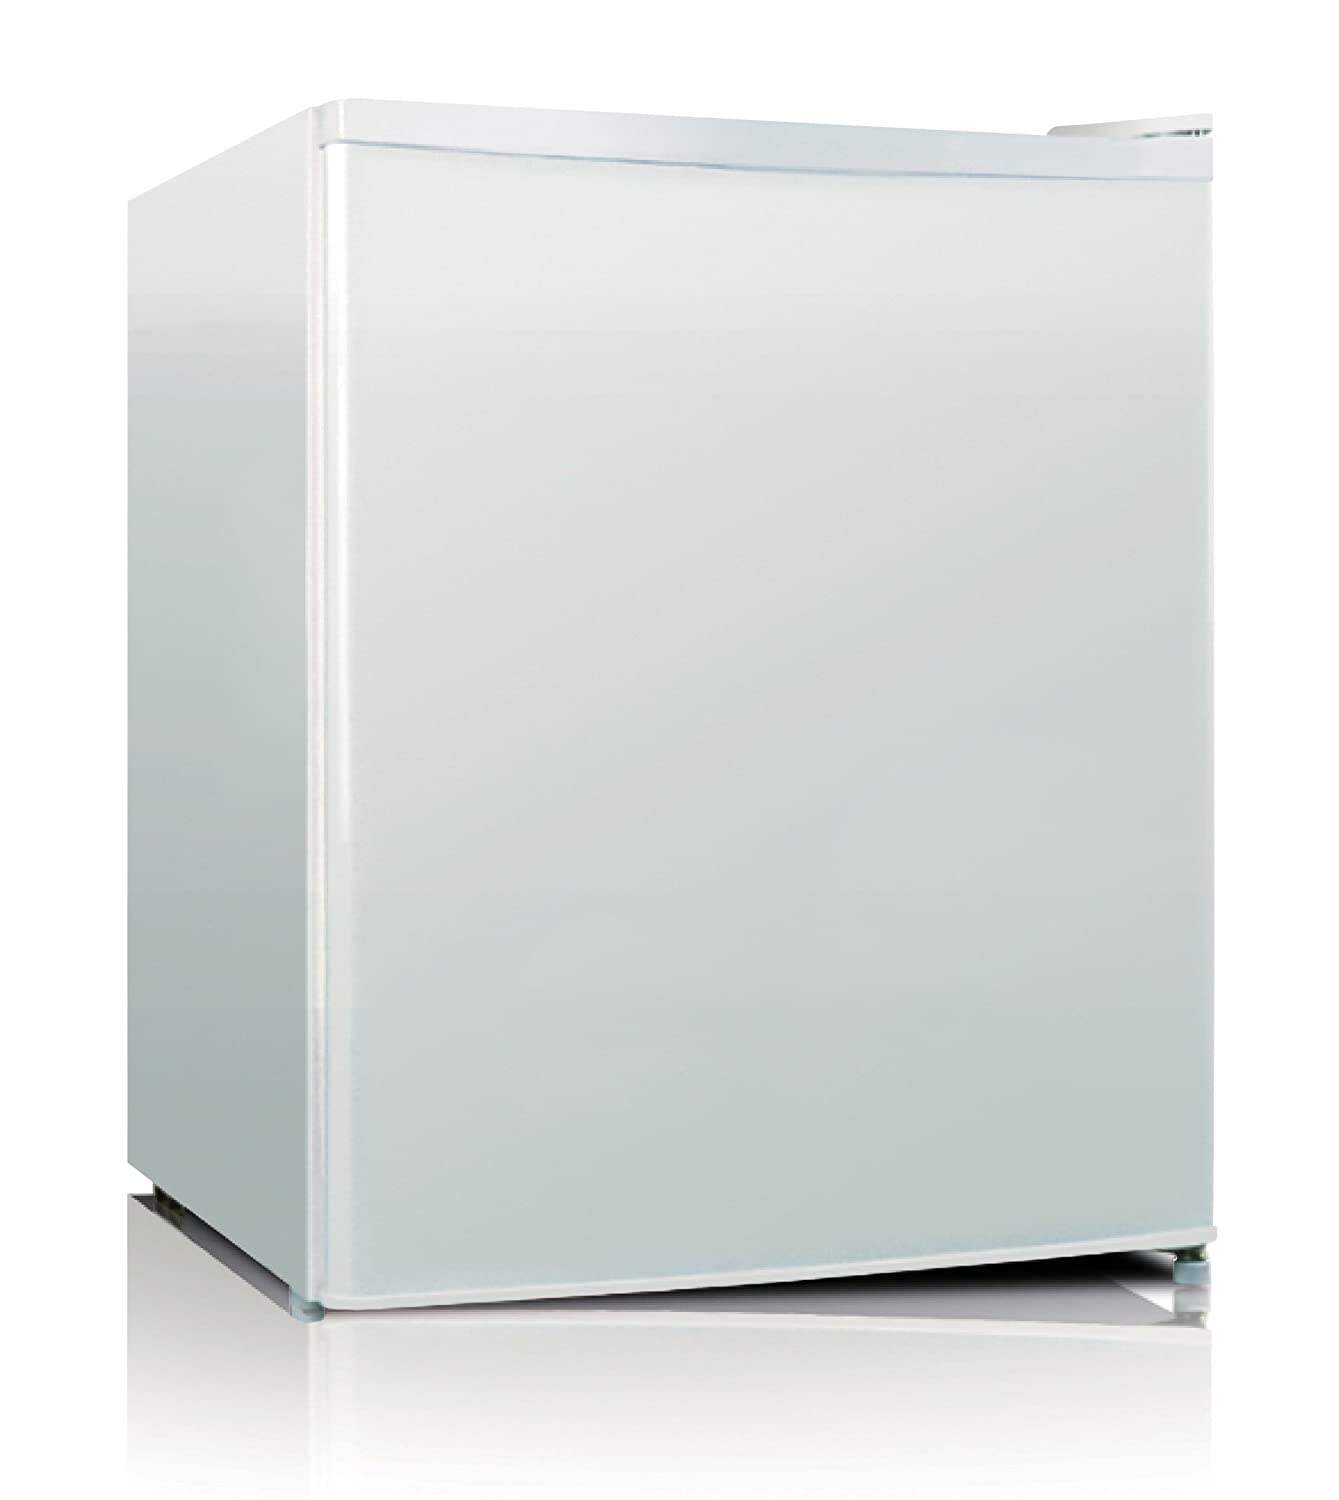 Sunpentown UF-213W 2.1 cu.ft. Upright Freezer - White at Sears.com